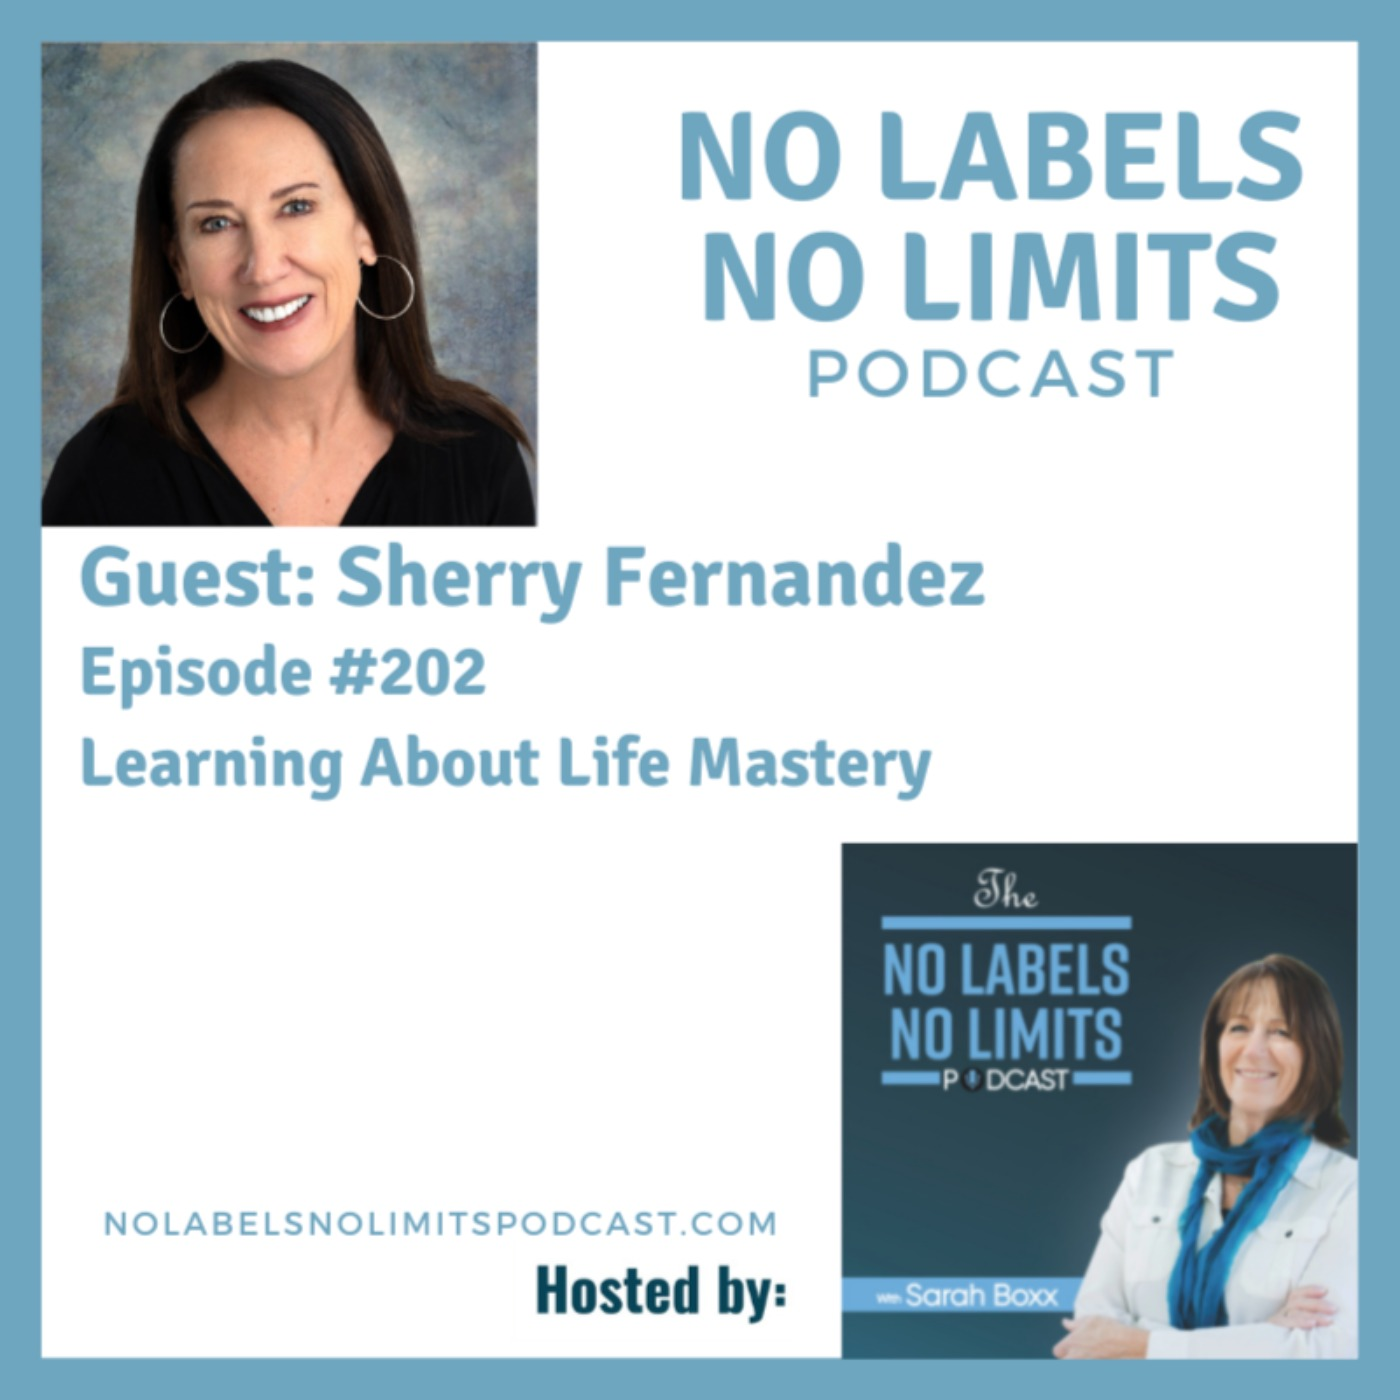 202 -  Learning About Life Mastery with Sherry Fernandez